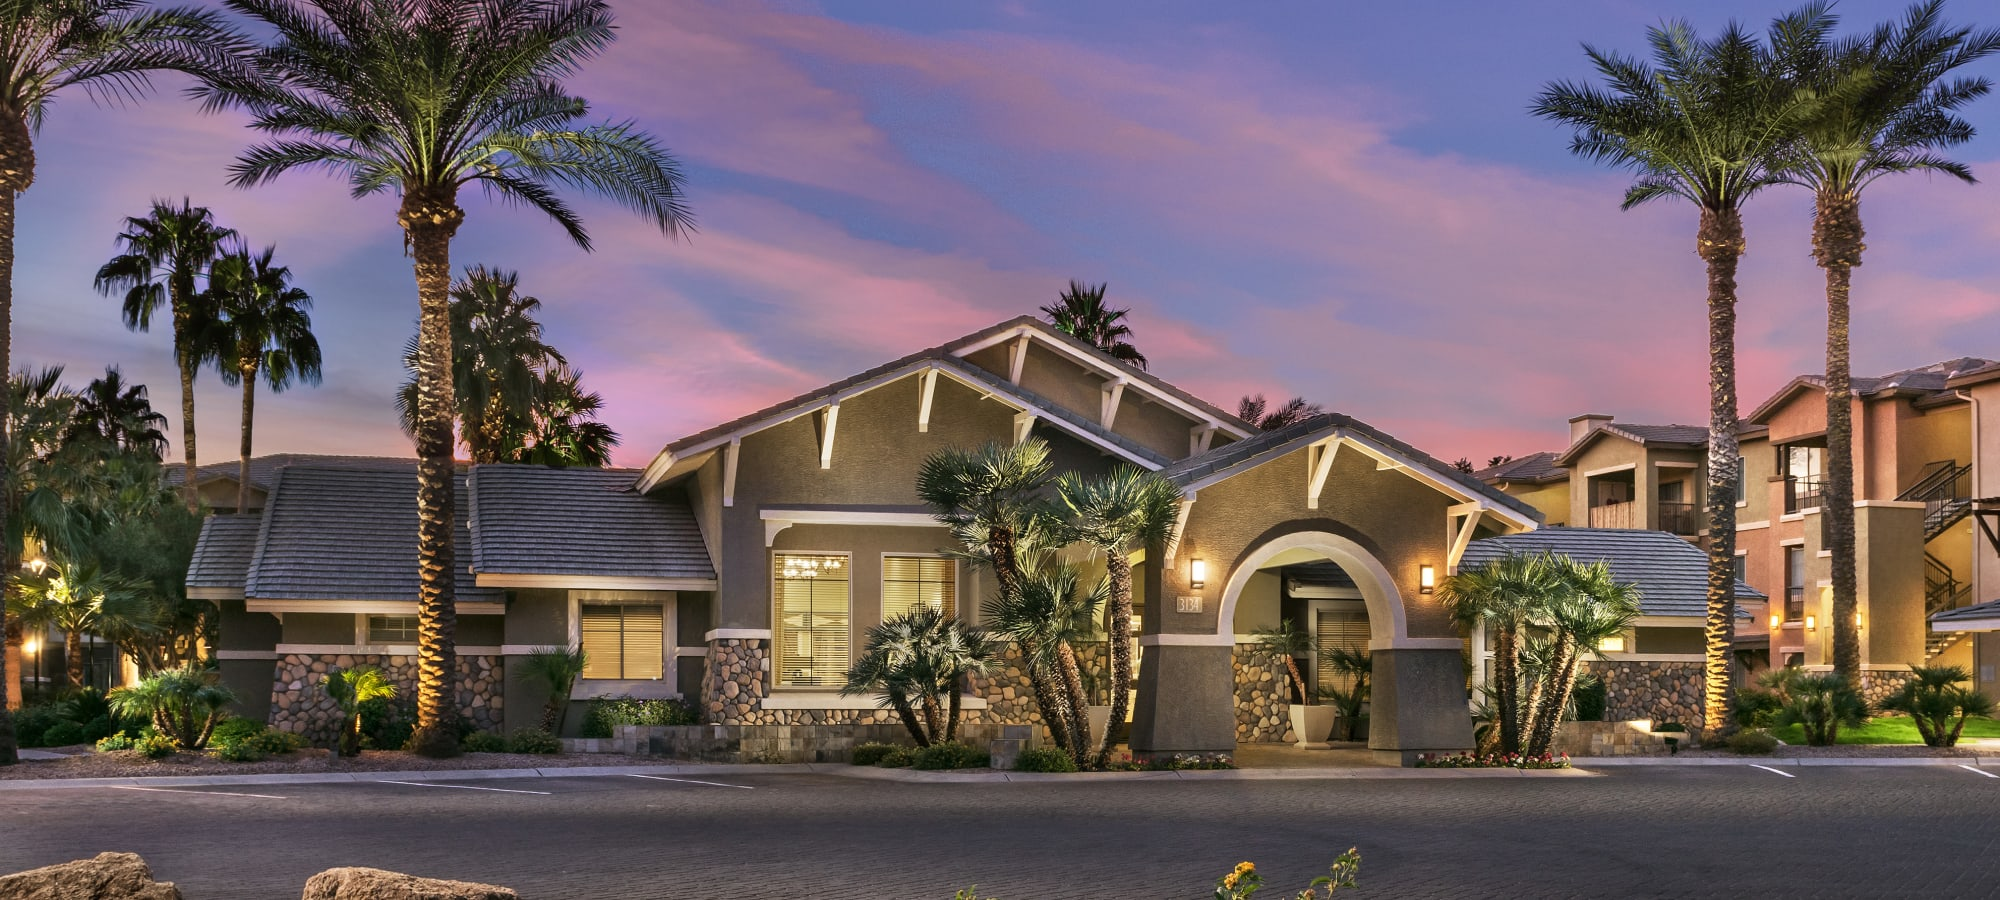 Stunning exterior of leasing office at Azul at Spectrum in Gilbert, Arizona during sunset